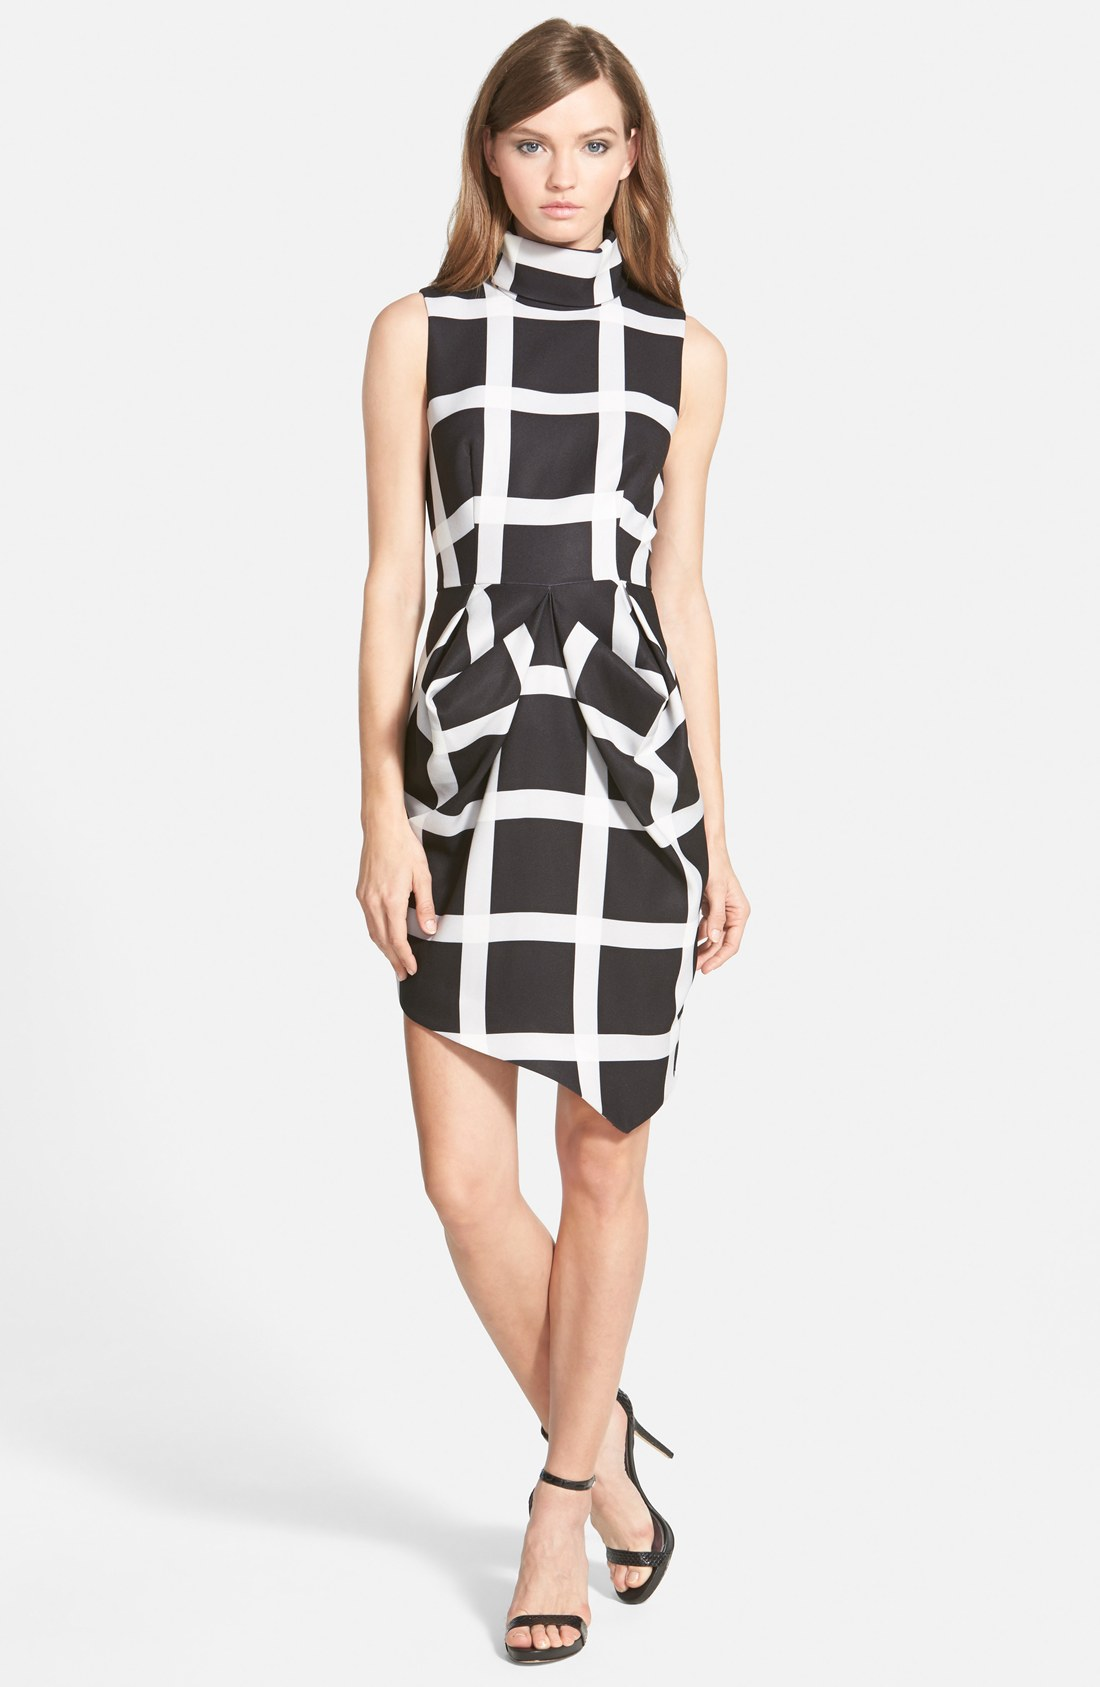 Windowpane Print Dress $168.00